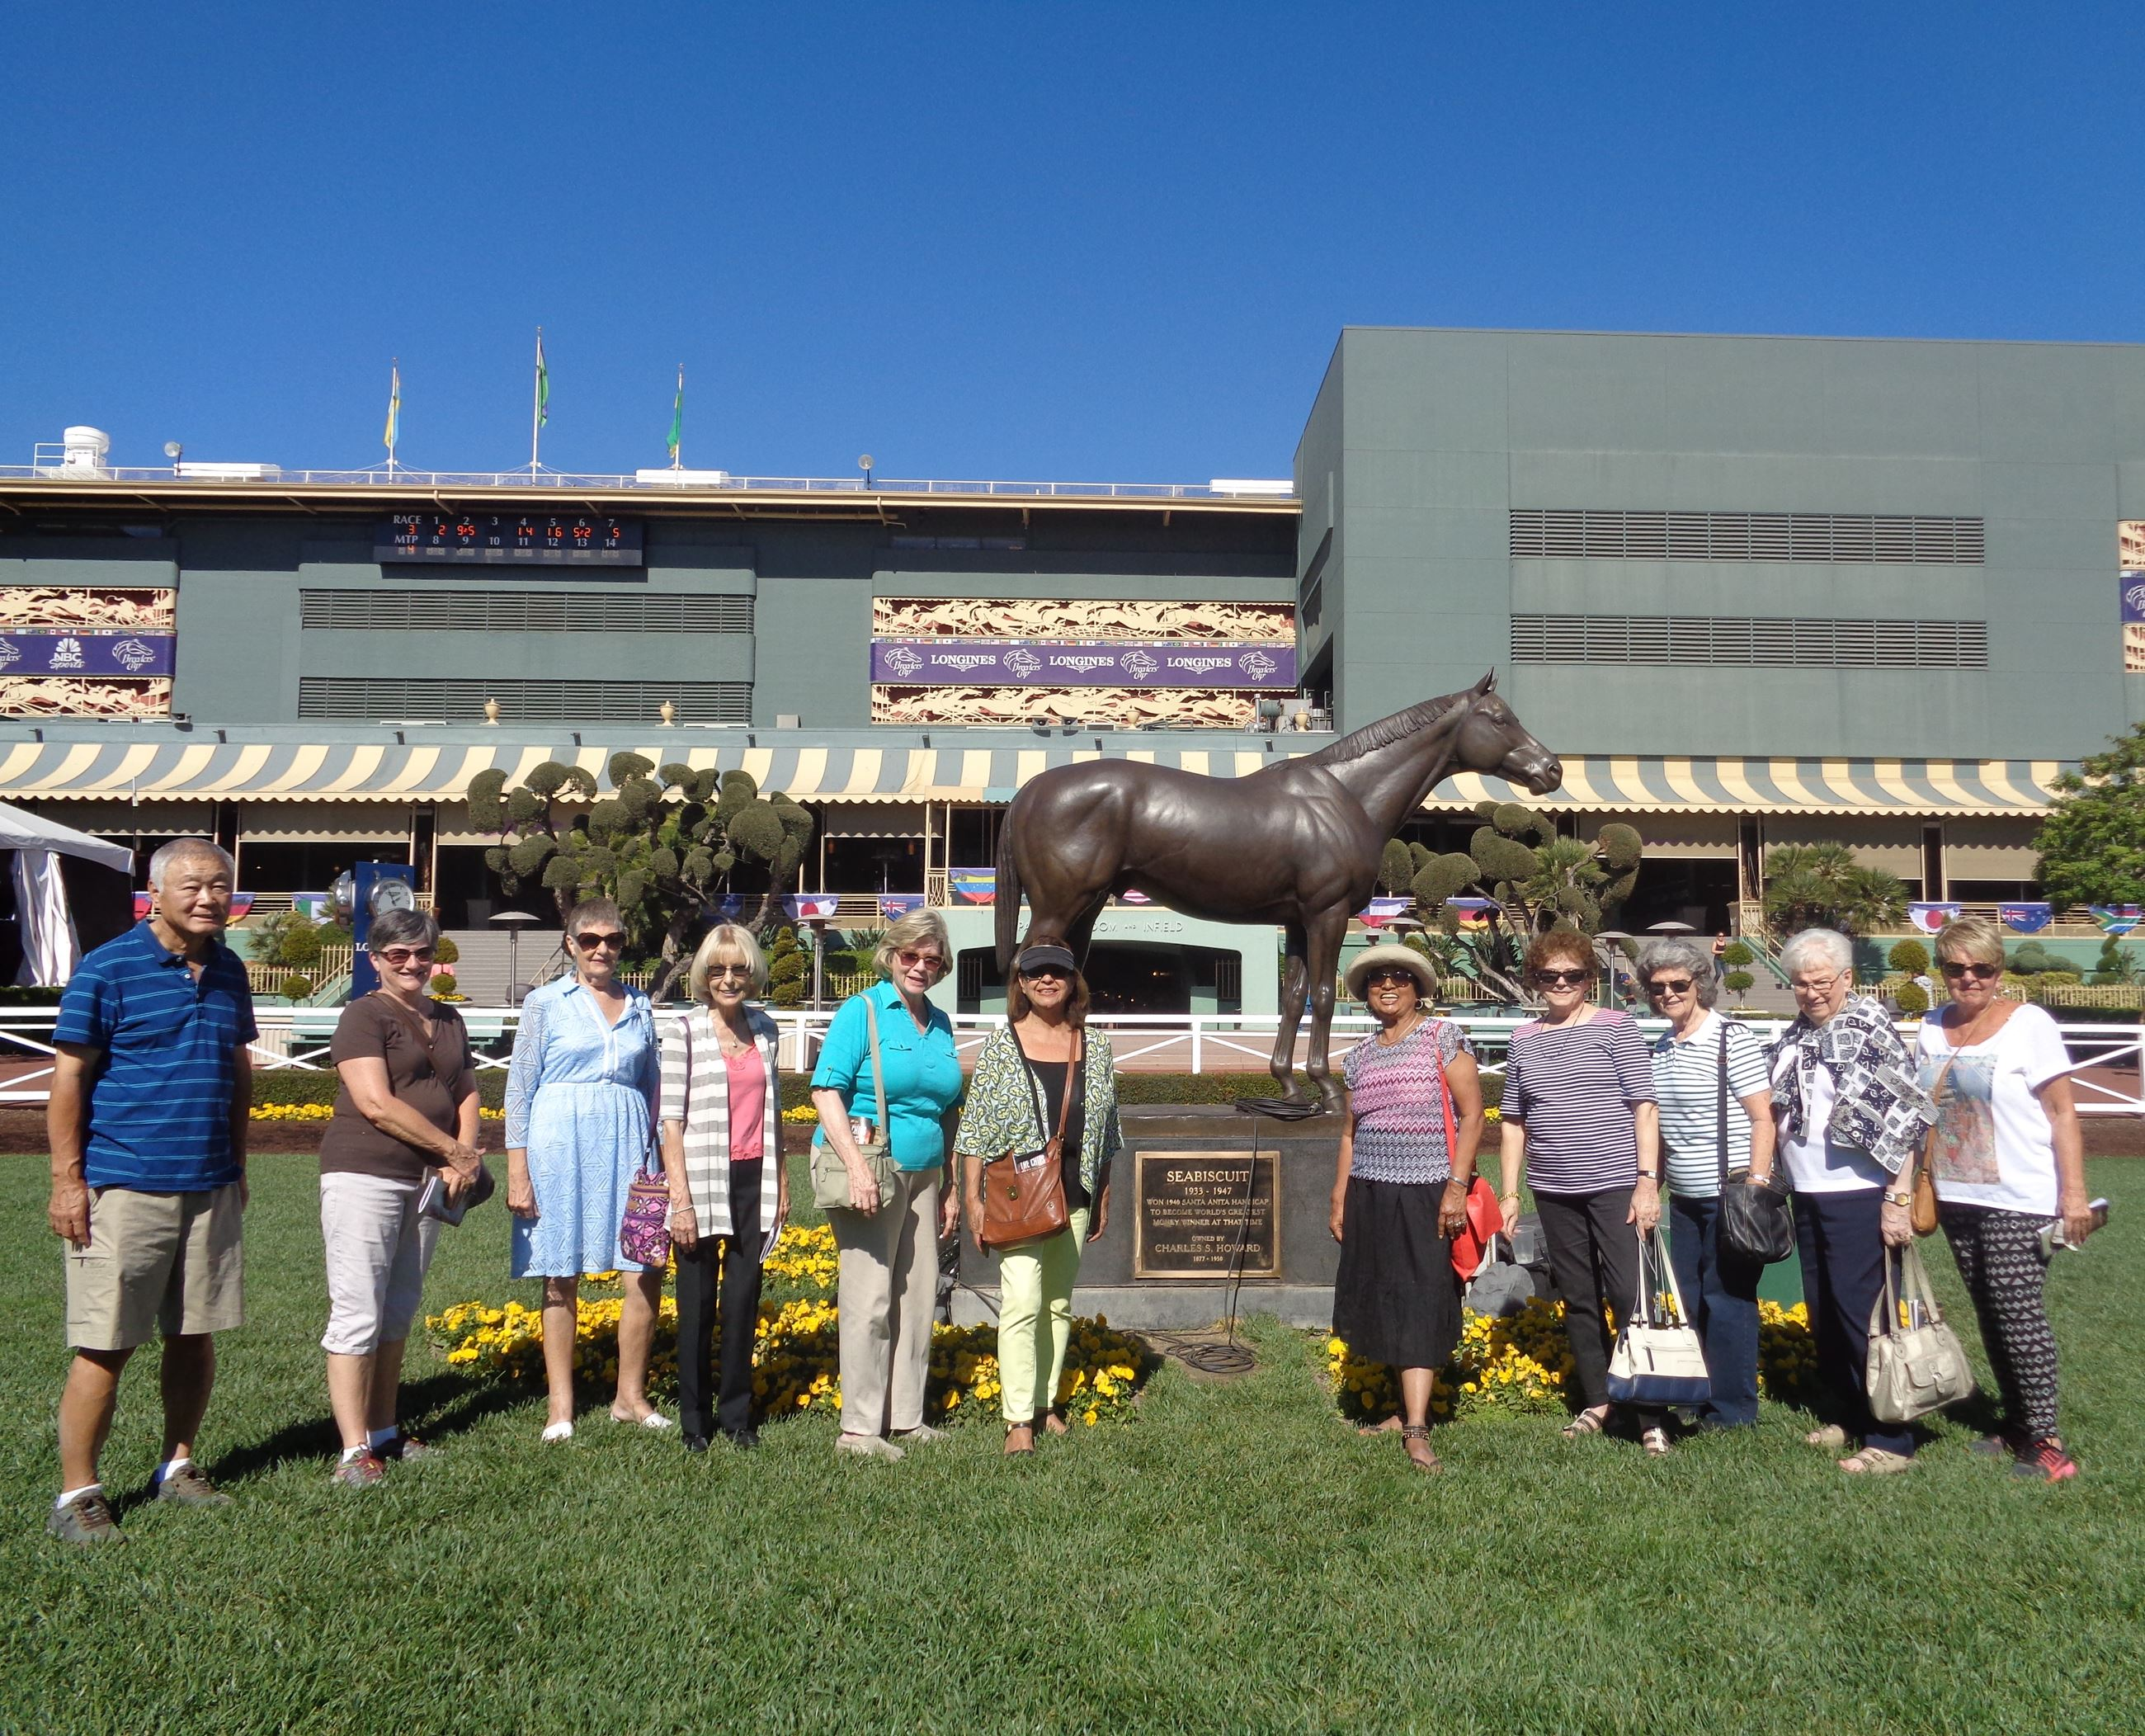 Santa Anita - Day at the Races